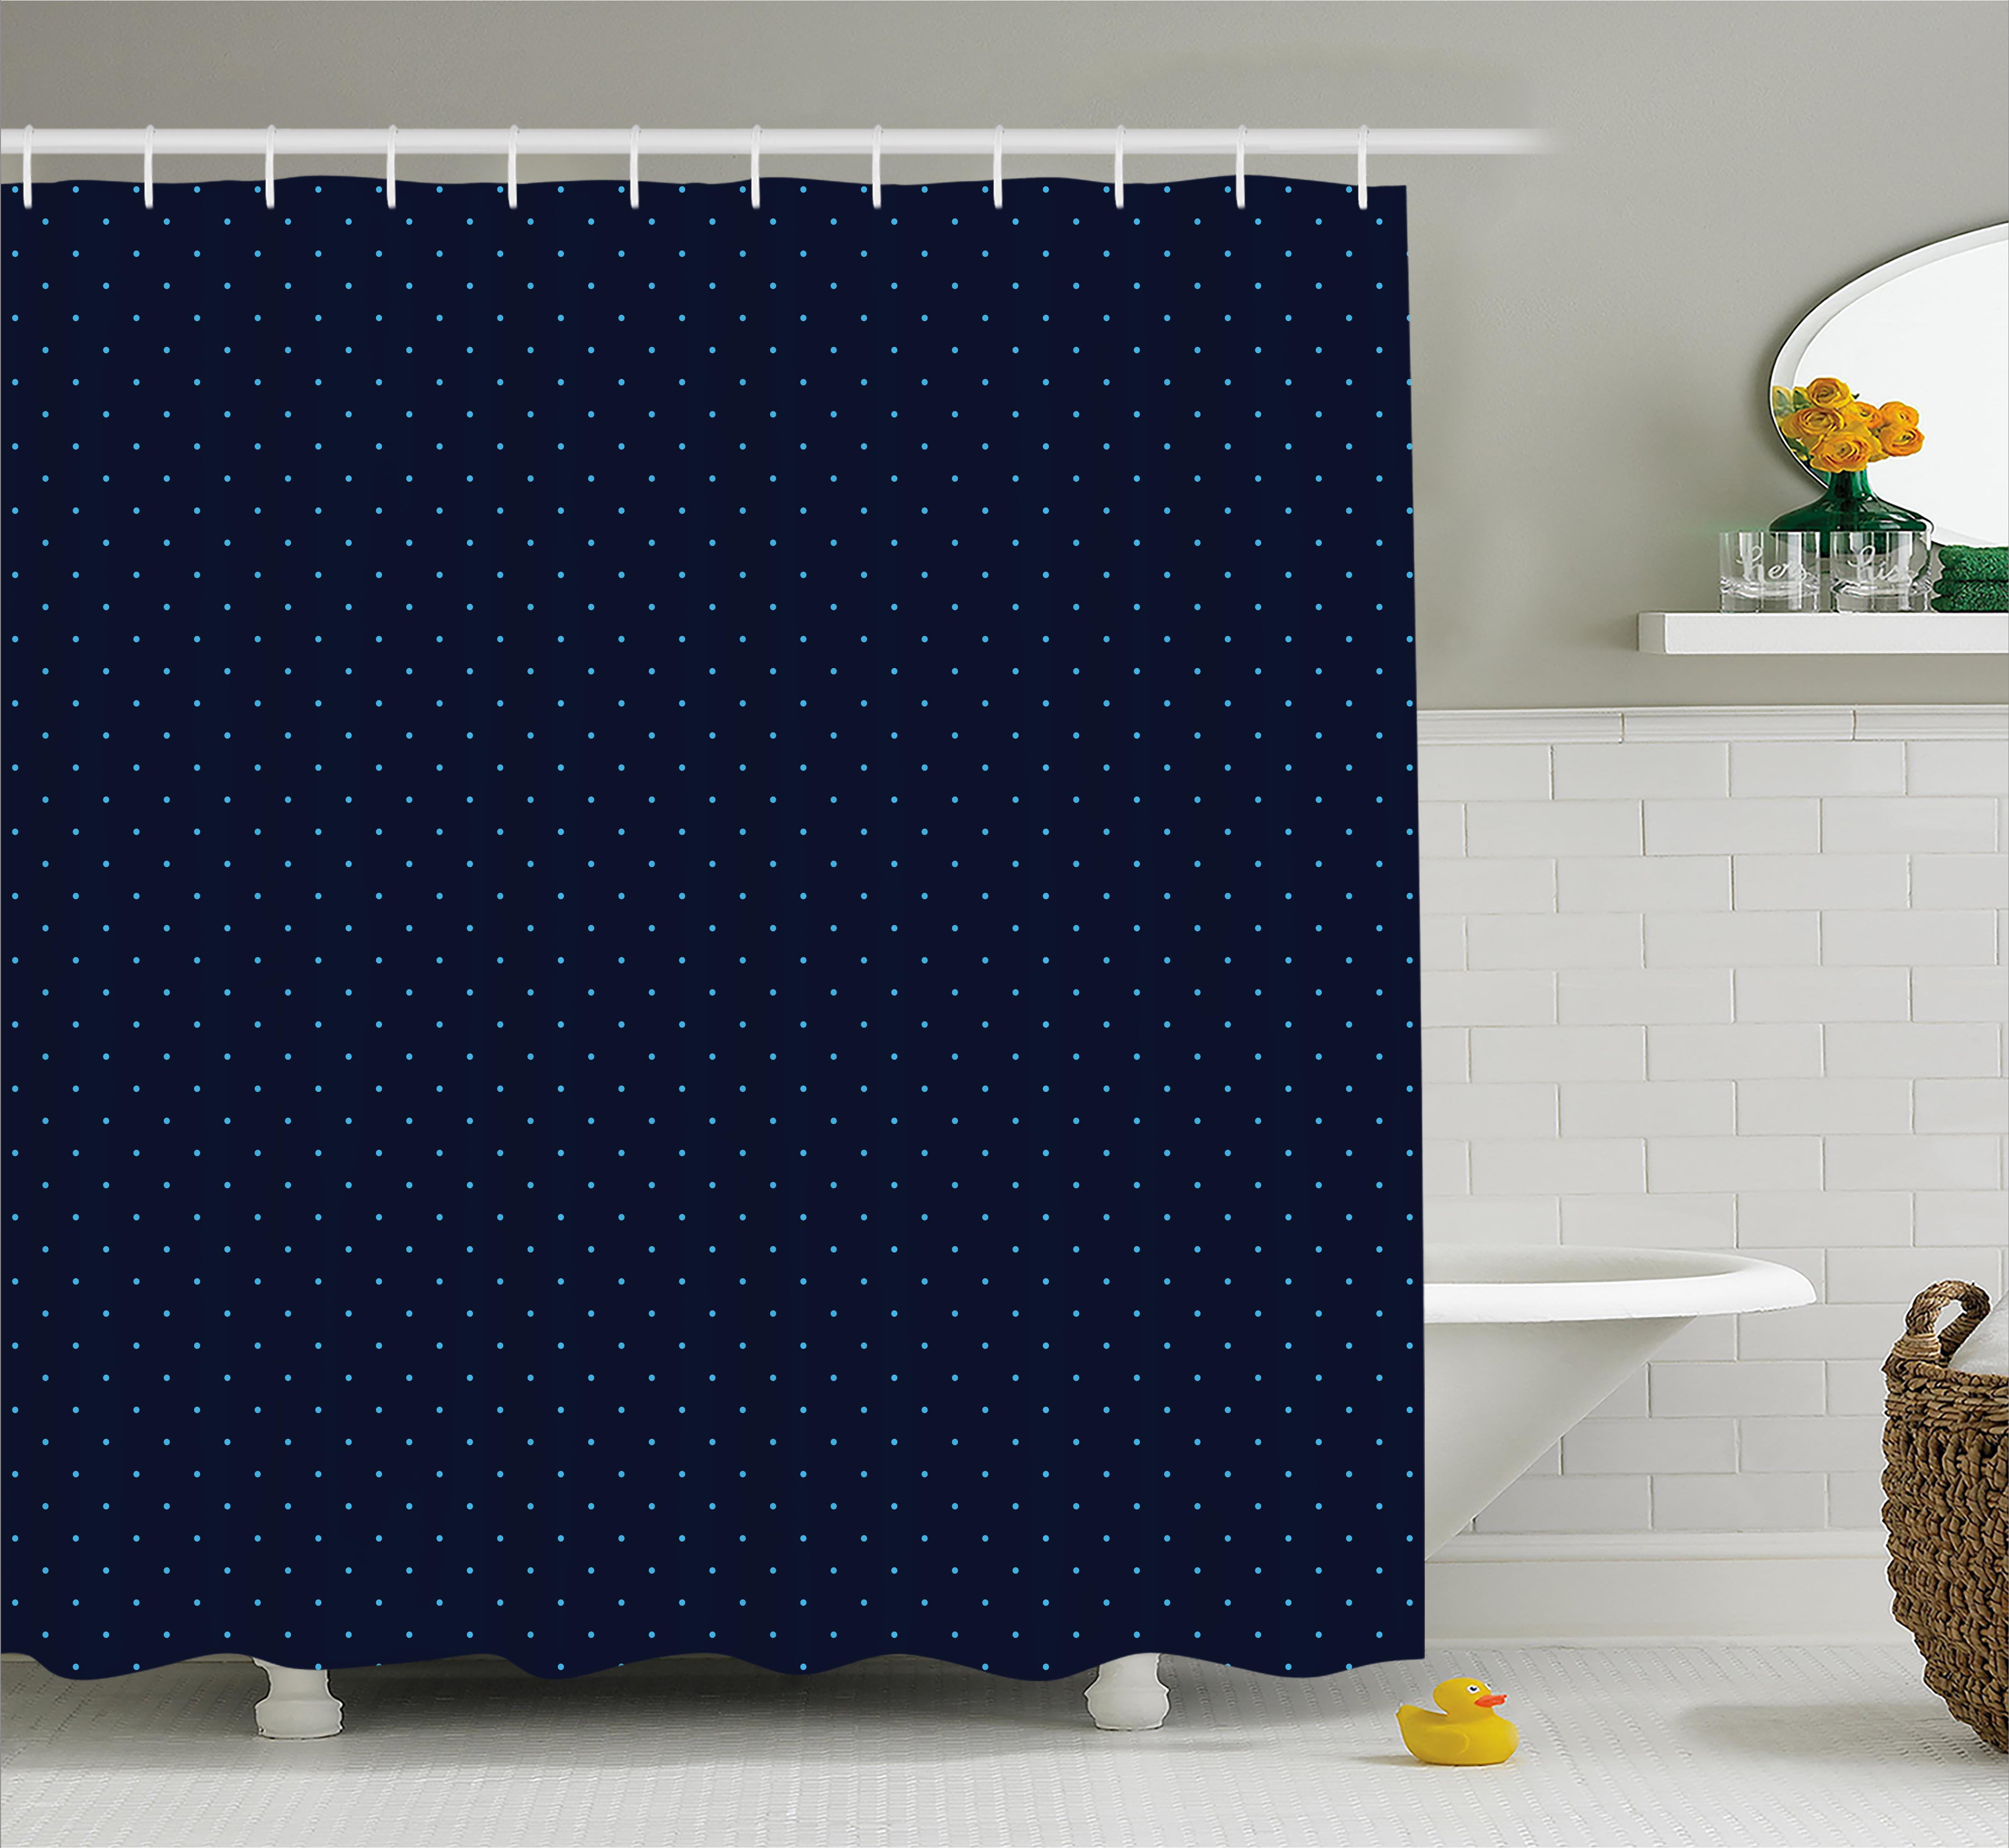 Navy Blue Decor Shower Curtain, Simple Blue Dots on Dark Blue Background Cute Style Artwork, Fabric Bathroom Set with Hooks, 69W X 70L Inches, Light Blue and Dark Blue, by Ambesonne